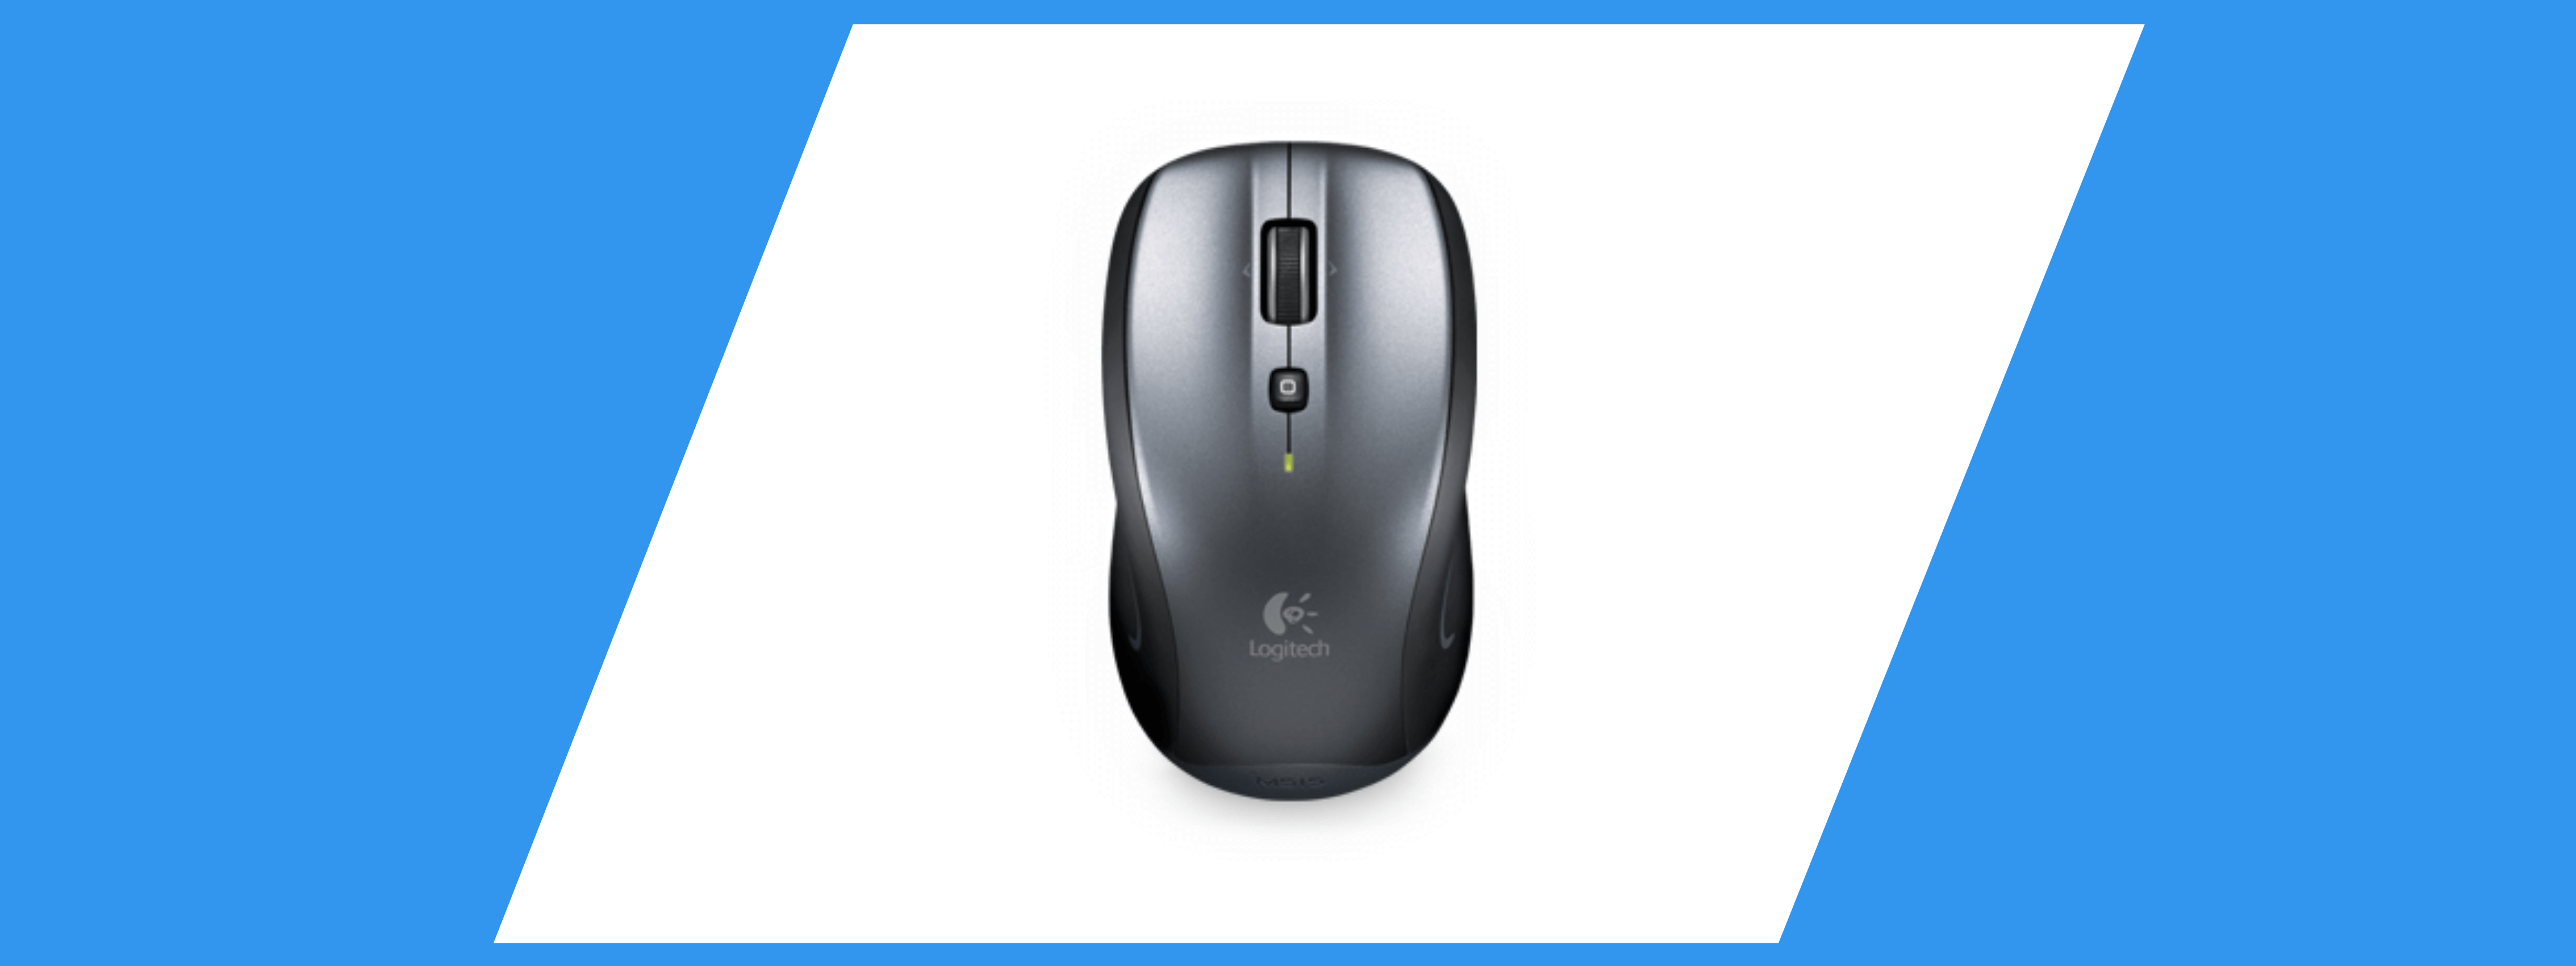 Logitech Couch Mouse M515 Software